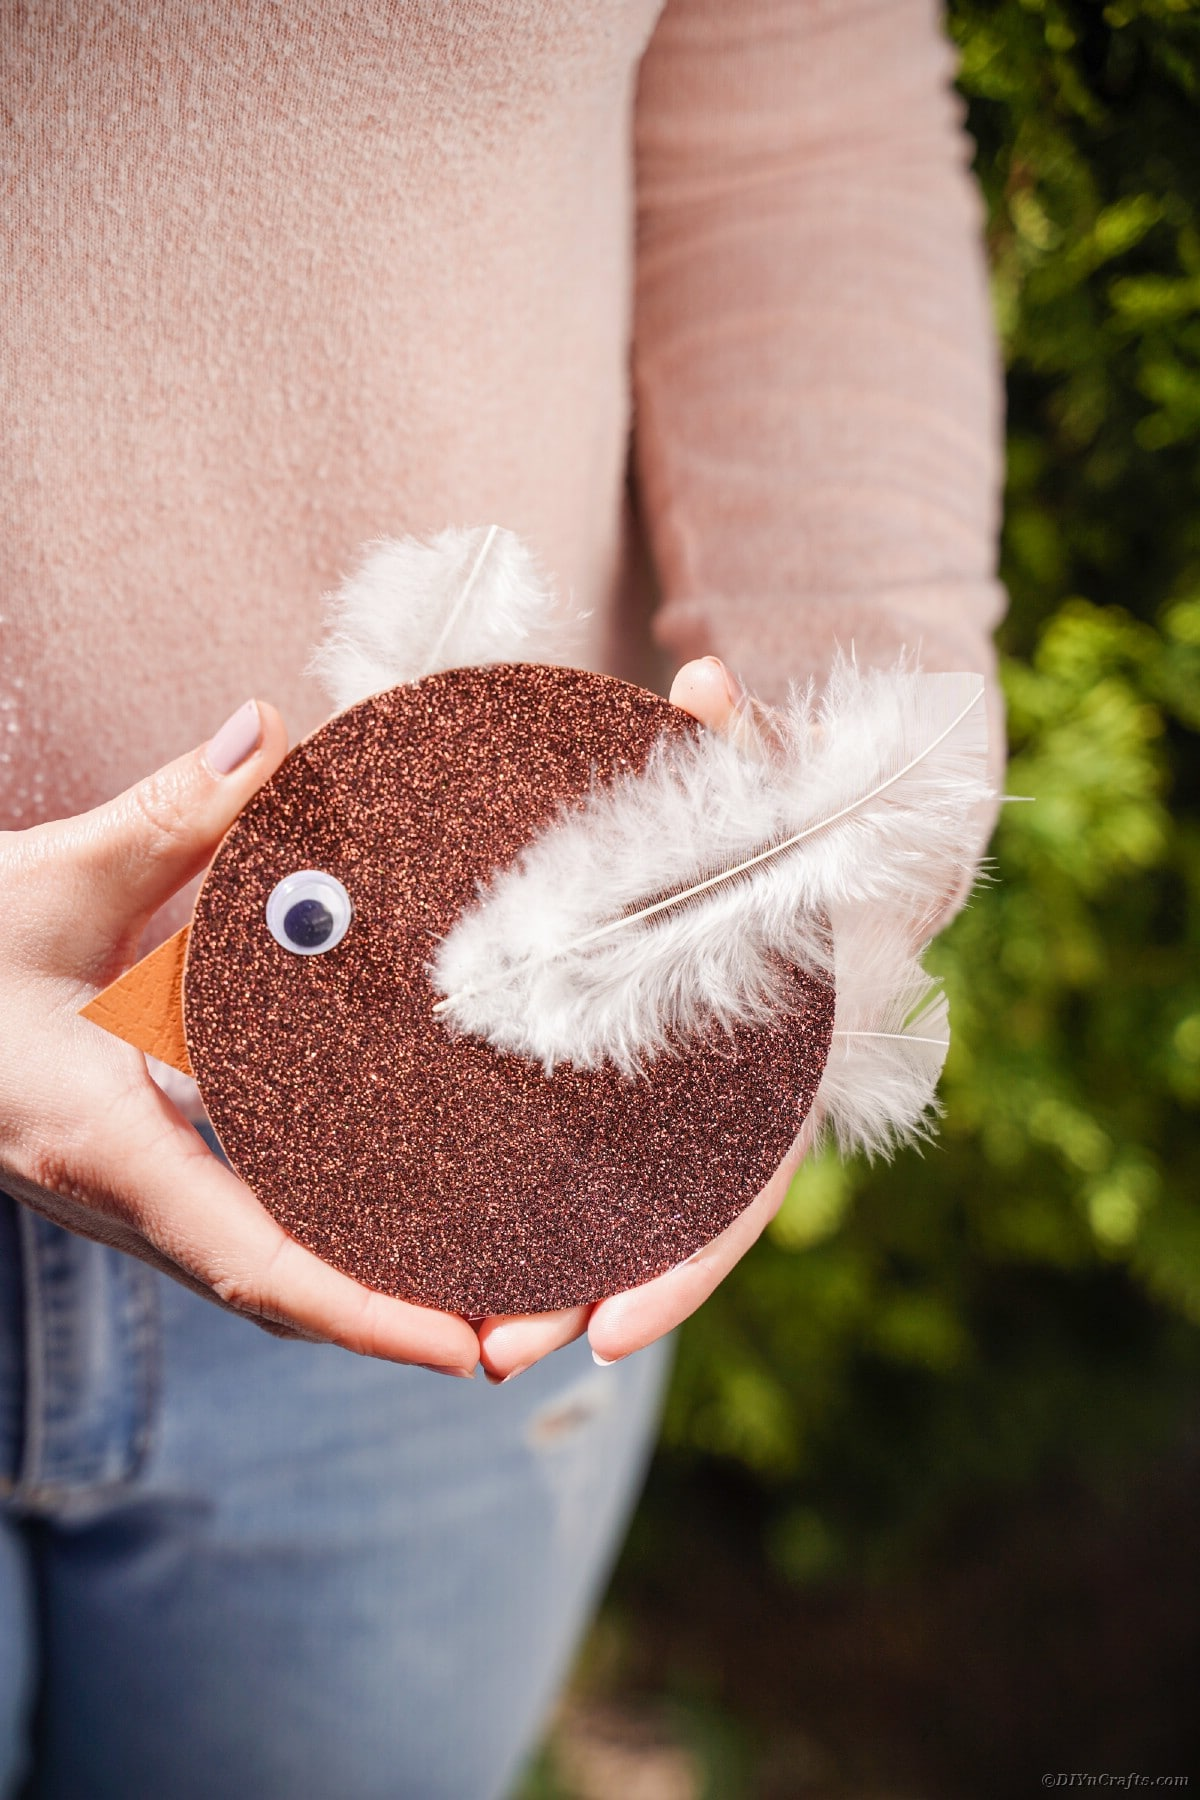 Woman holding brown old CD bird